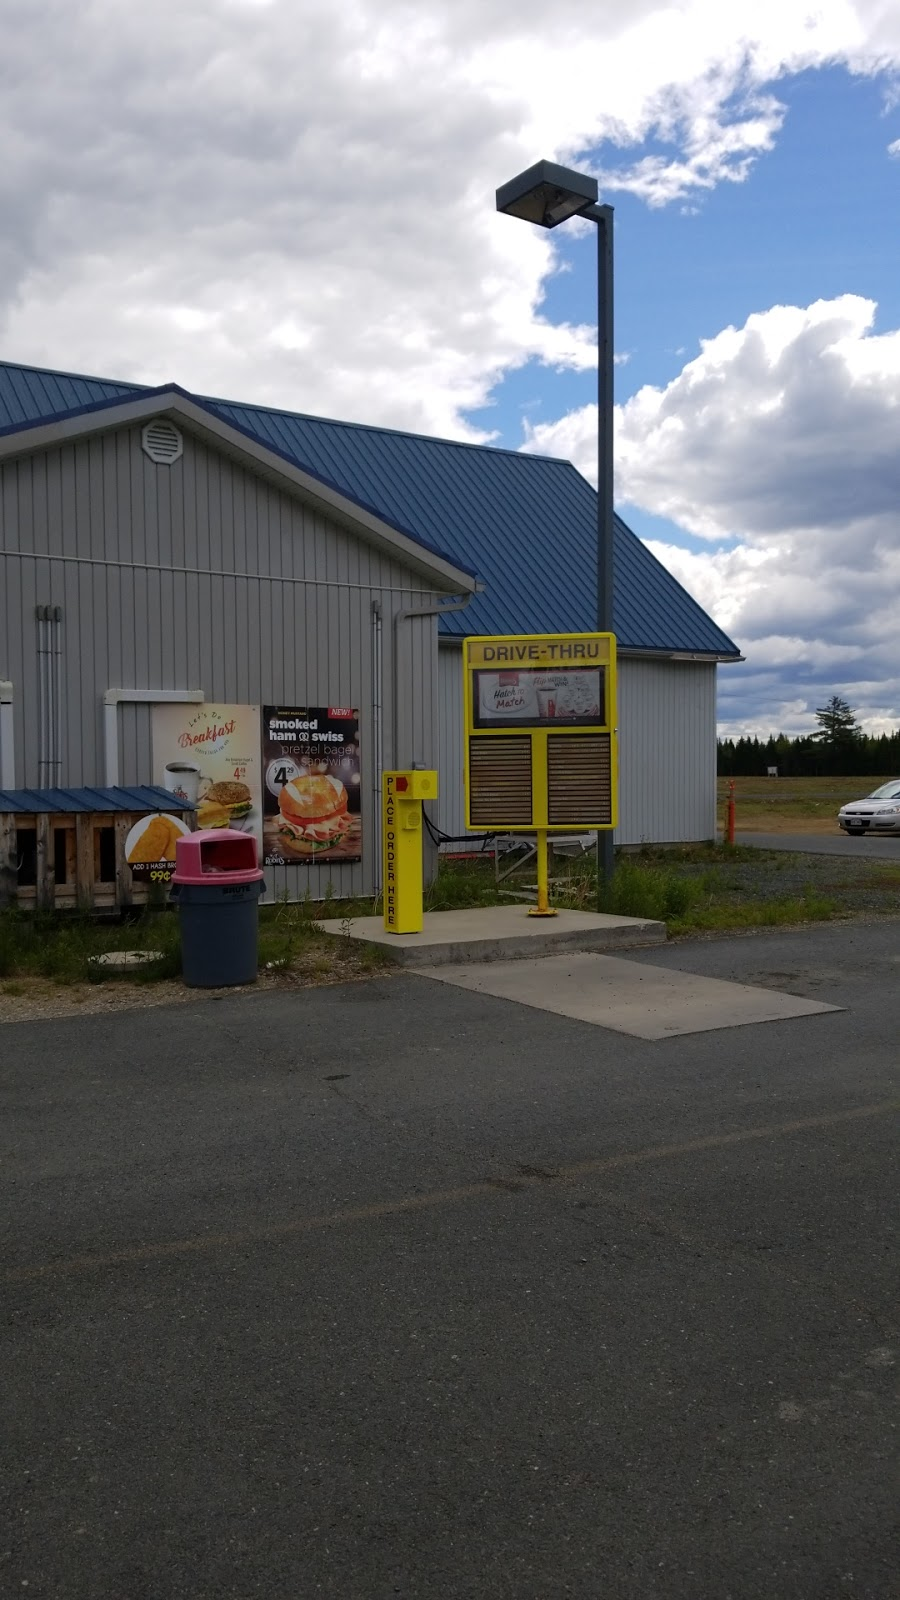 Esso   gas station   247 Williamstown Rd, Williamstown, NB E1V 5G1, Canada   5066222484 OR +1 506-622-2484